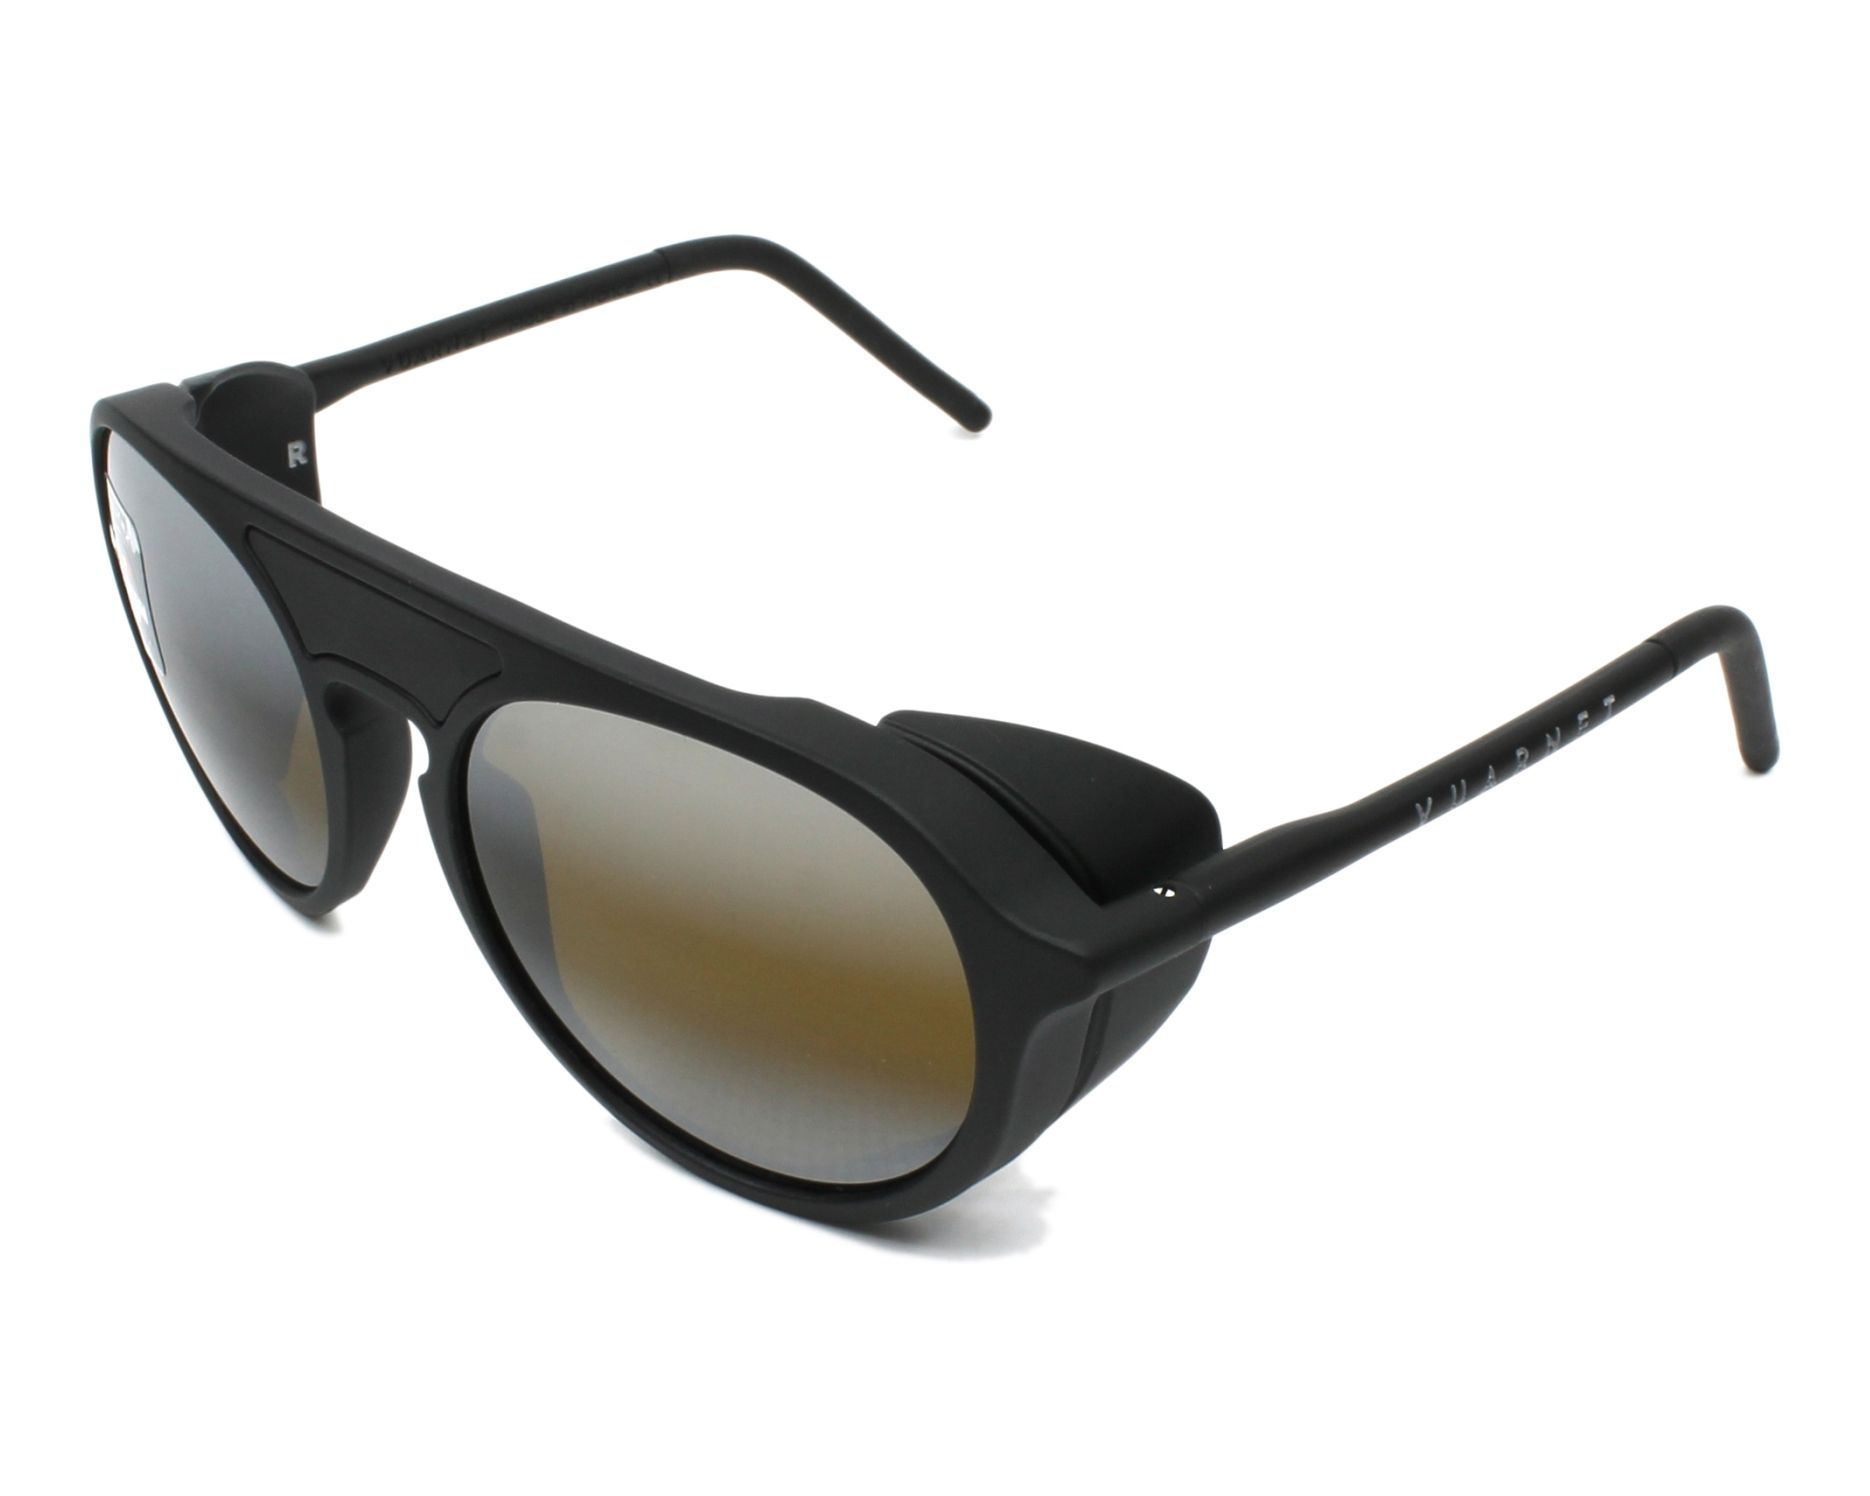 4501aee79db Sunglasses Vuarnet VL-1709 0001-7184 51-18 Black profile view